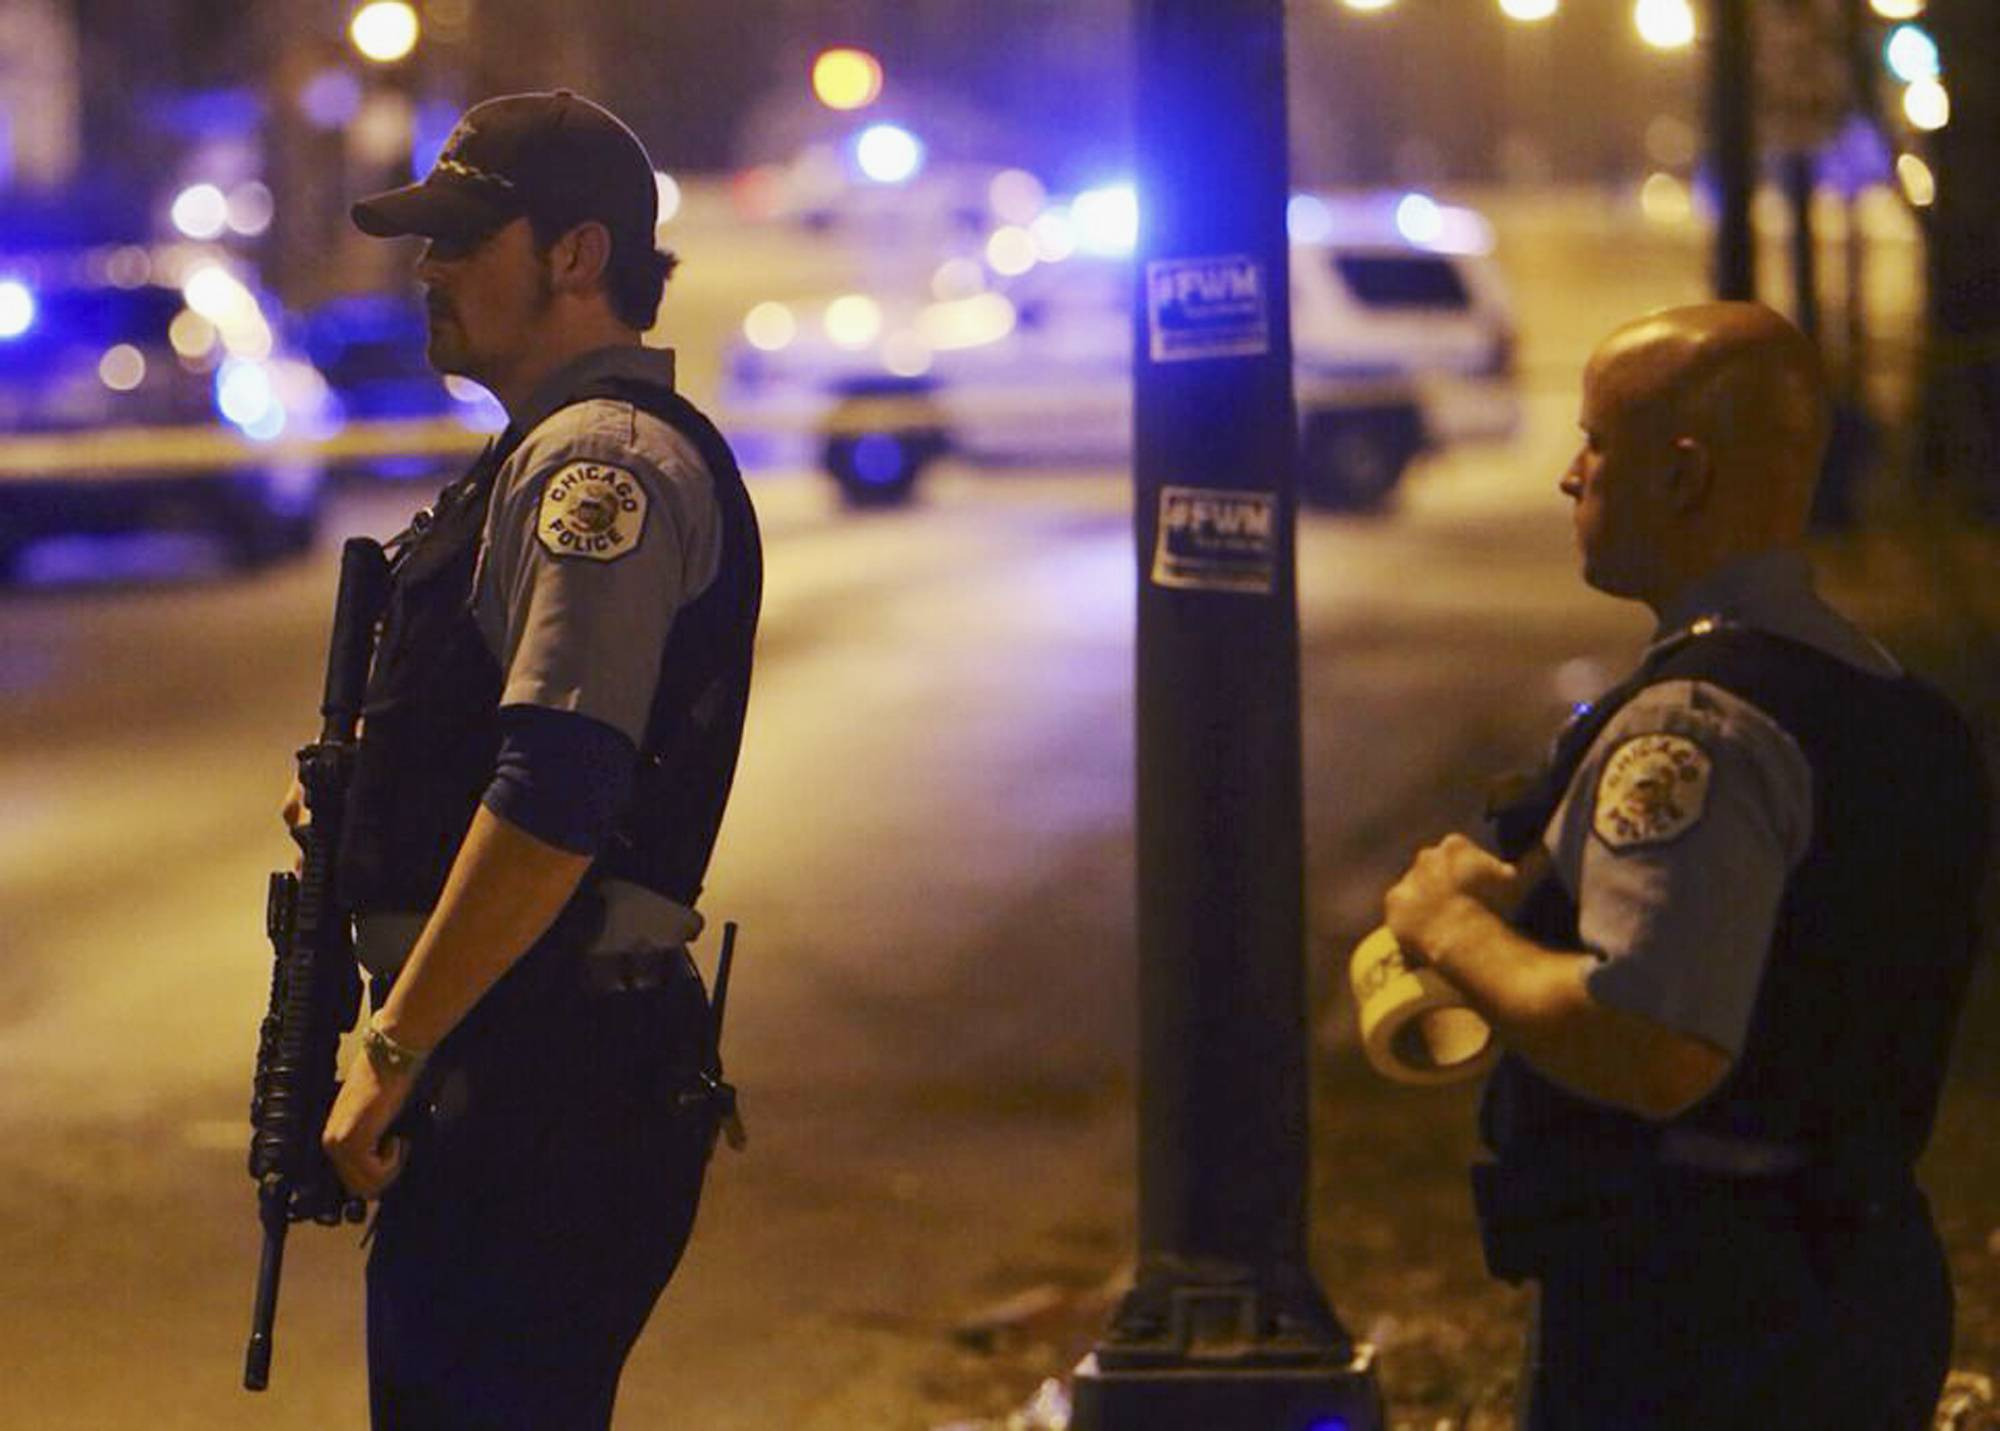 Police stand guard at the scene where five children, all 15 or younger, were shot and wounded Sunday as they walked from a park in Chicago.